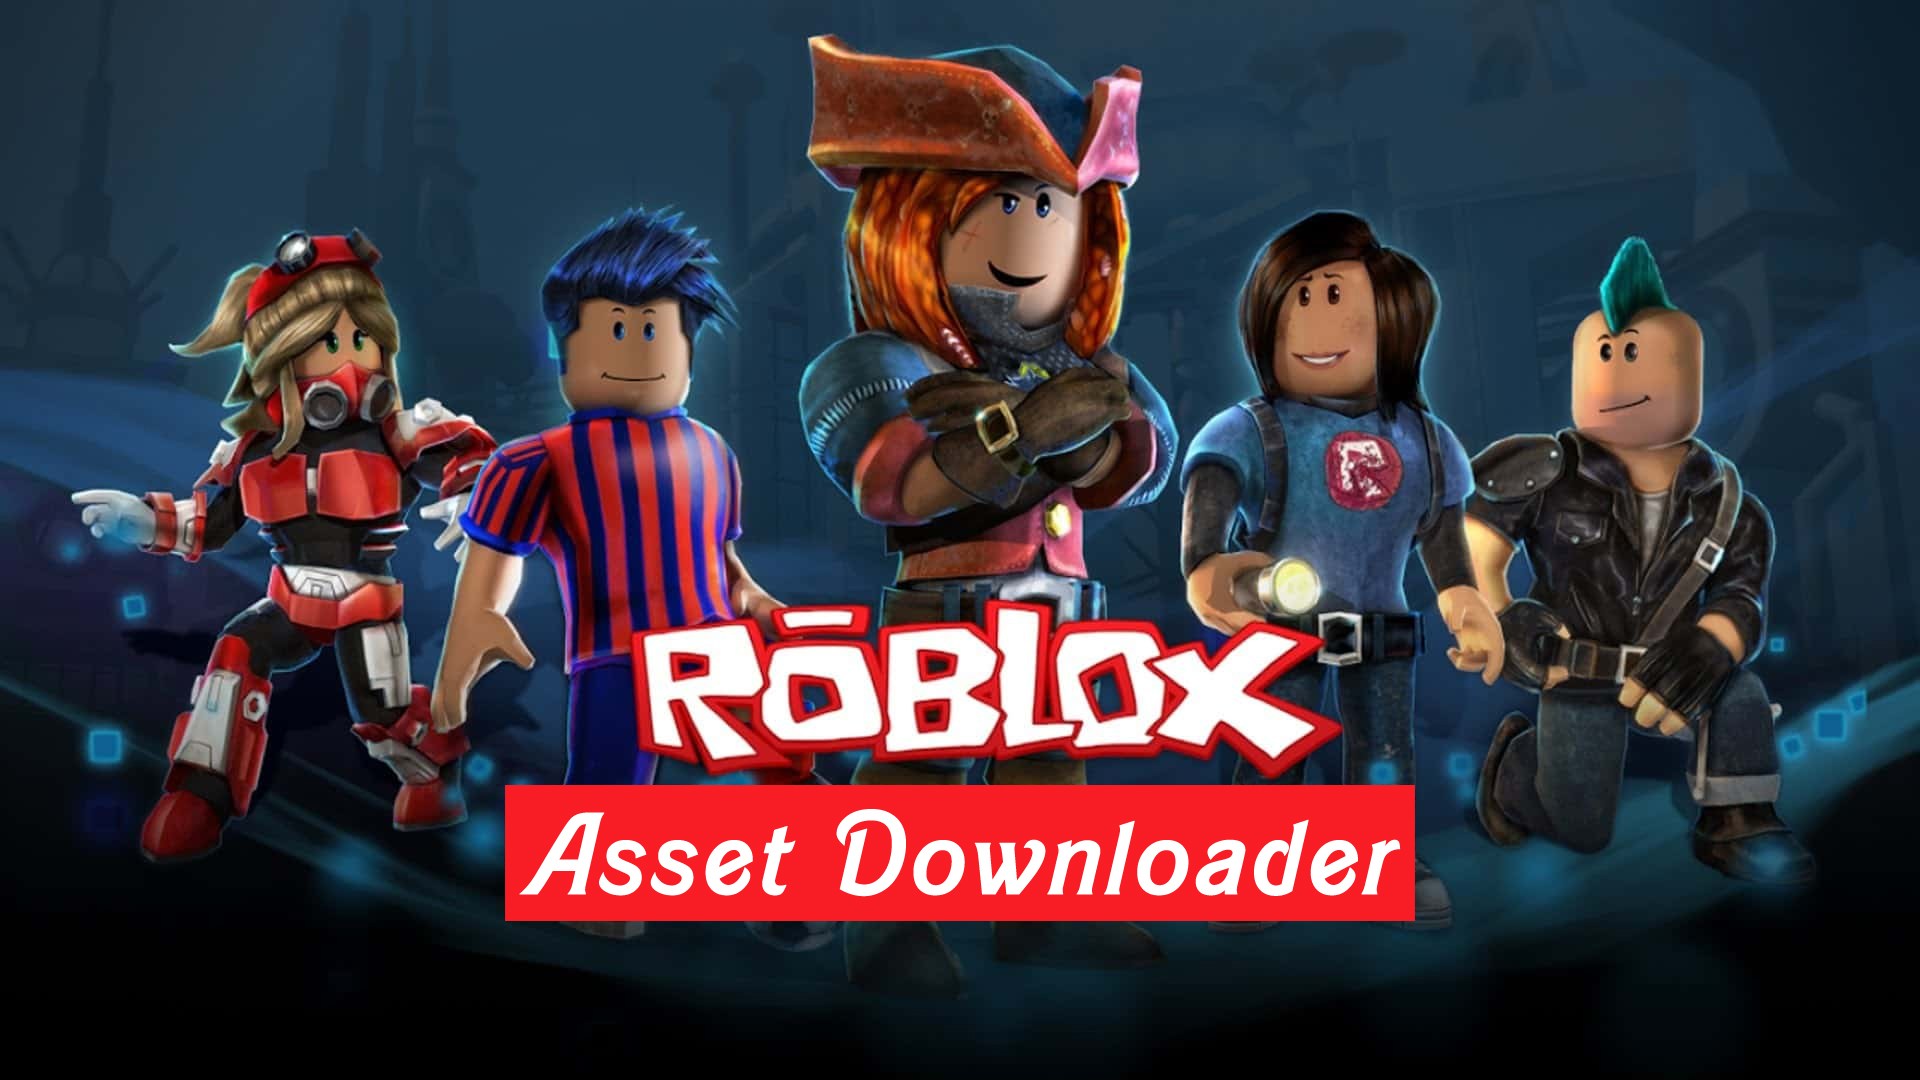 How To Download Any Asset For Free On Roblox With Roblox Asset